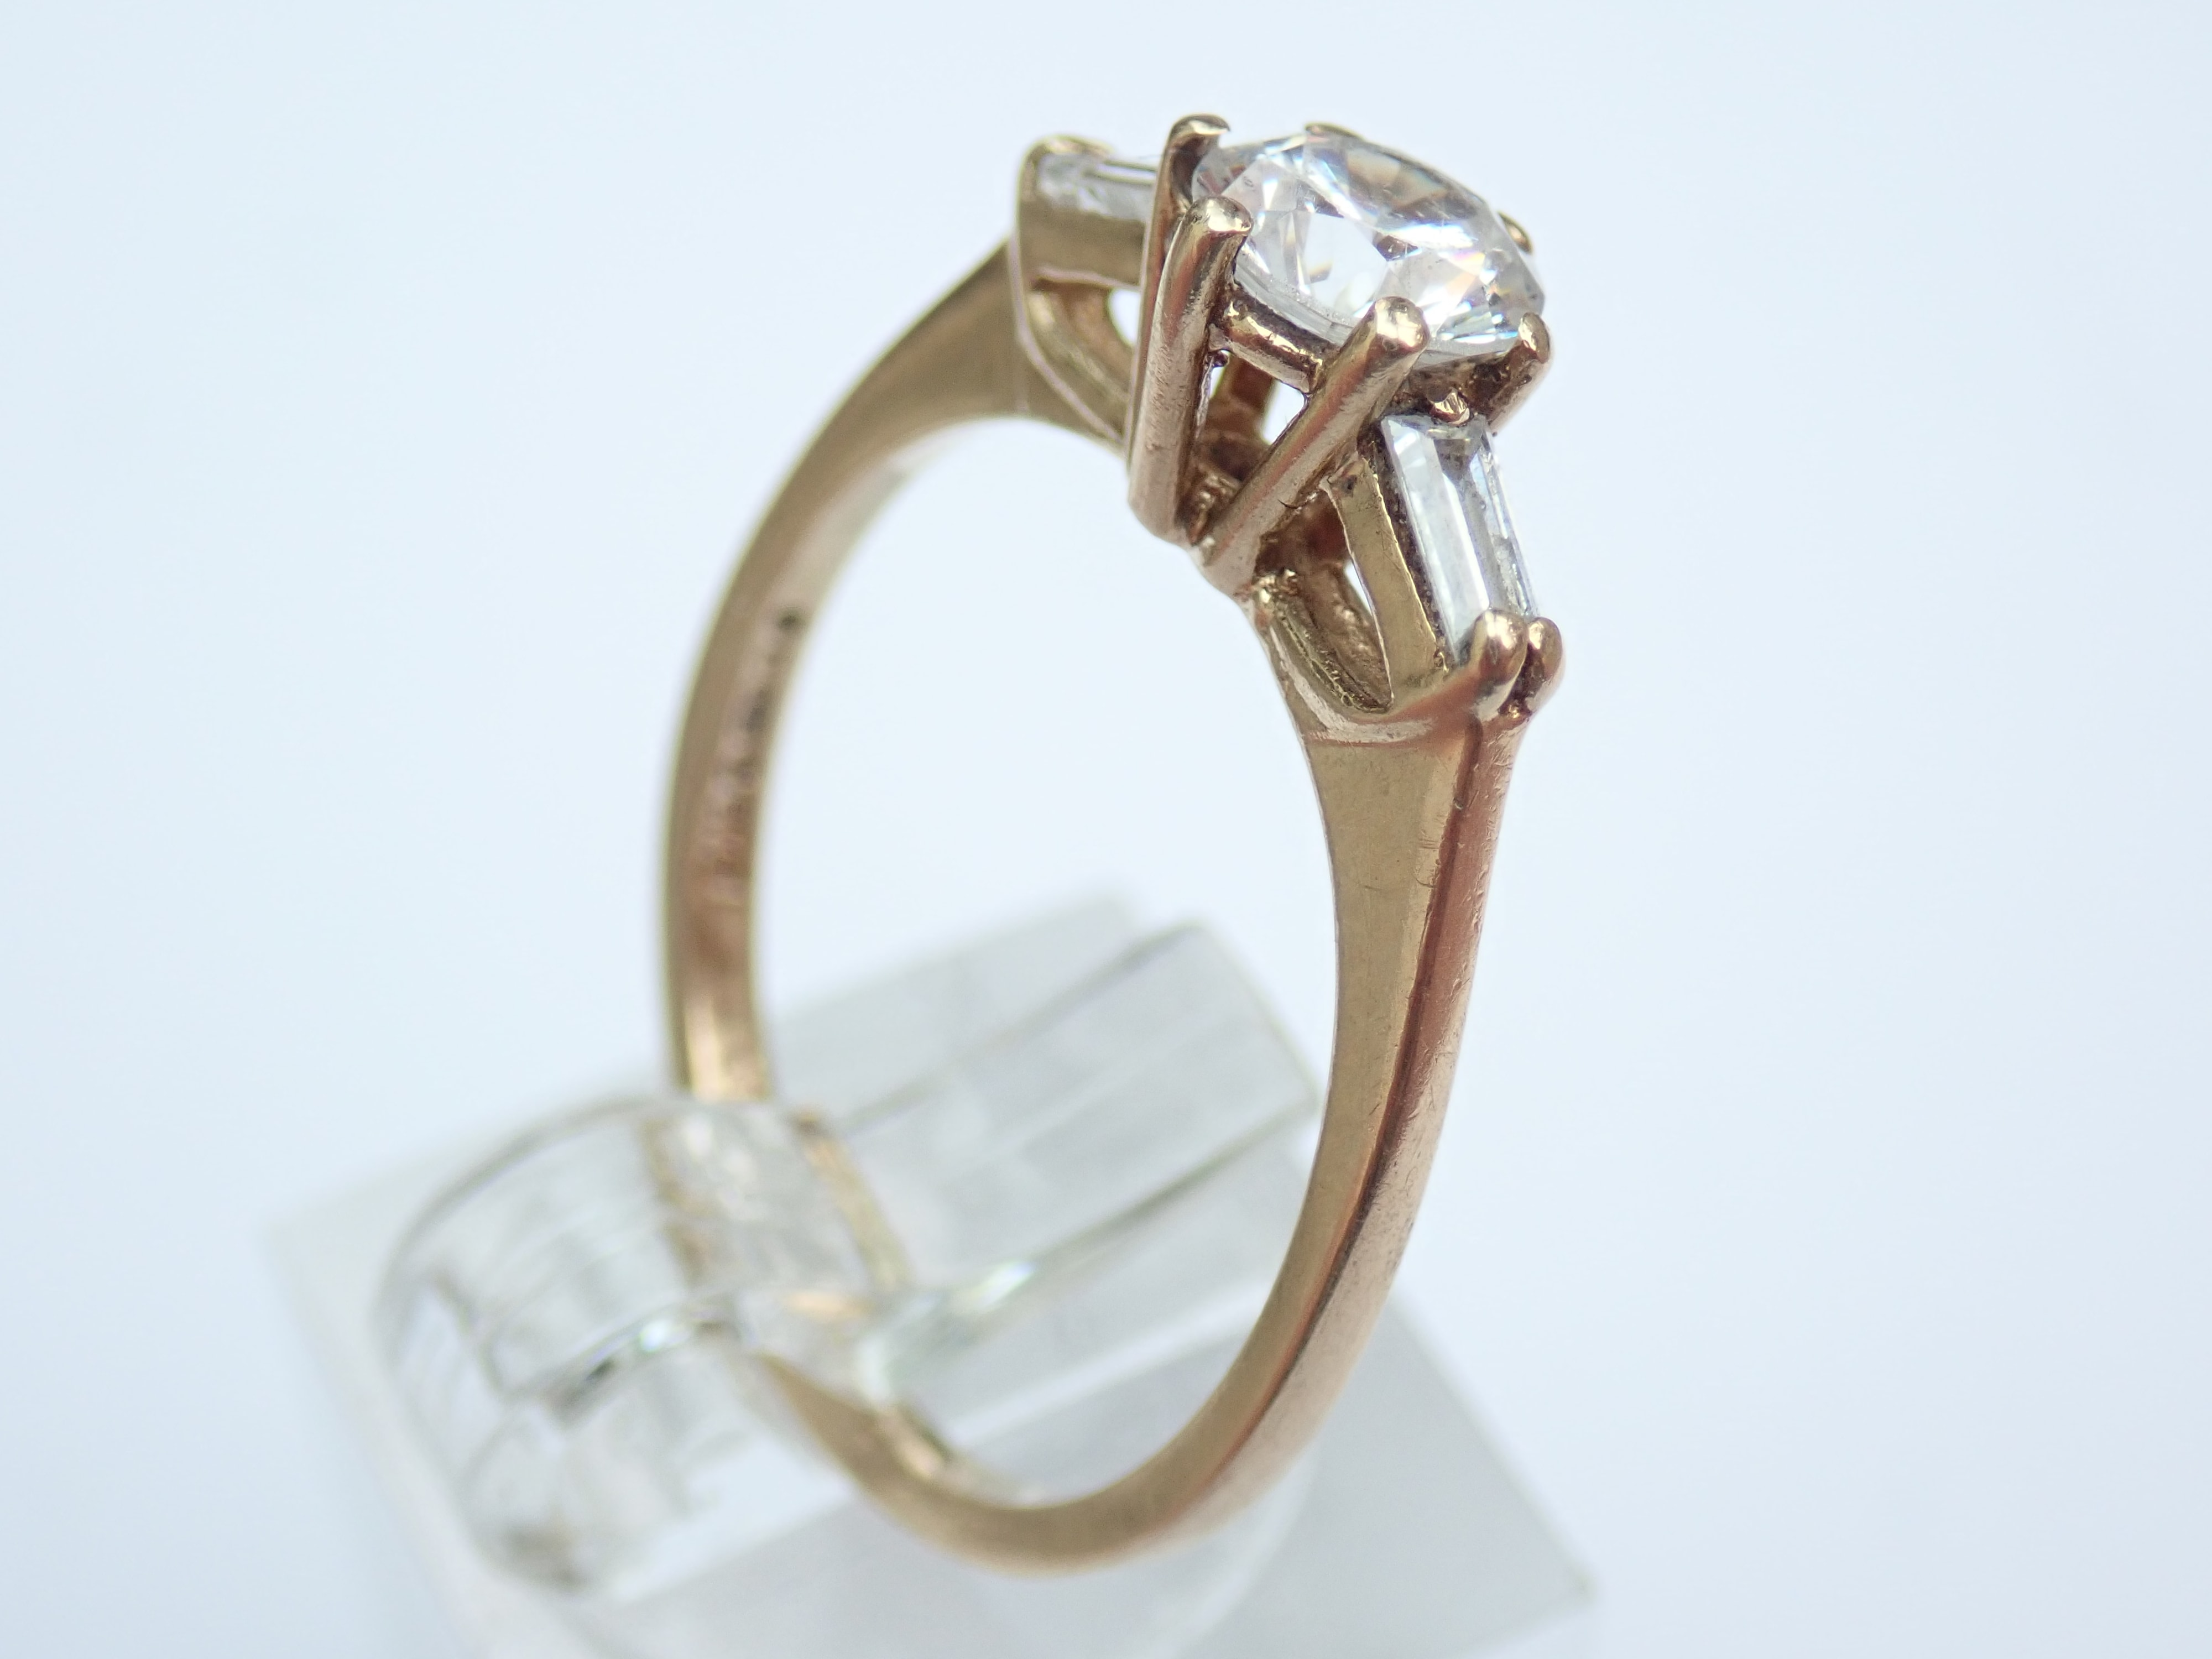 0.75 carat Cubic Zirconia Solitaire Ring with side stones 9 carat Gold Size Q #40